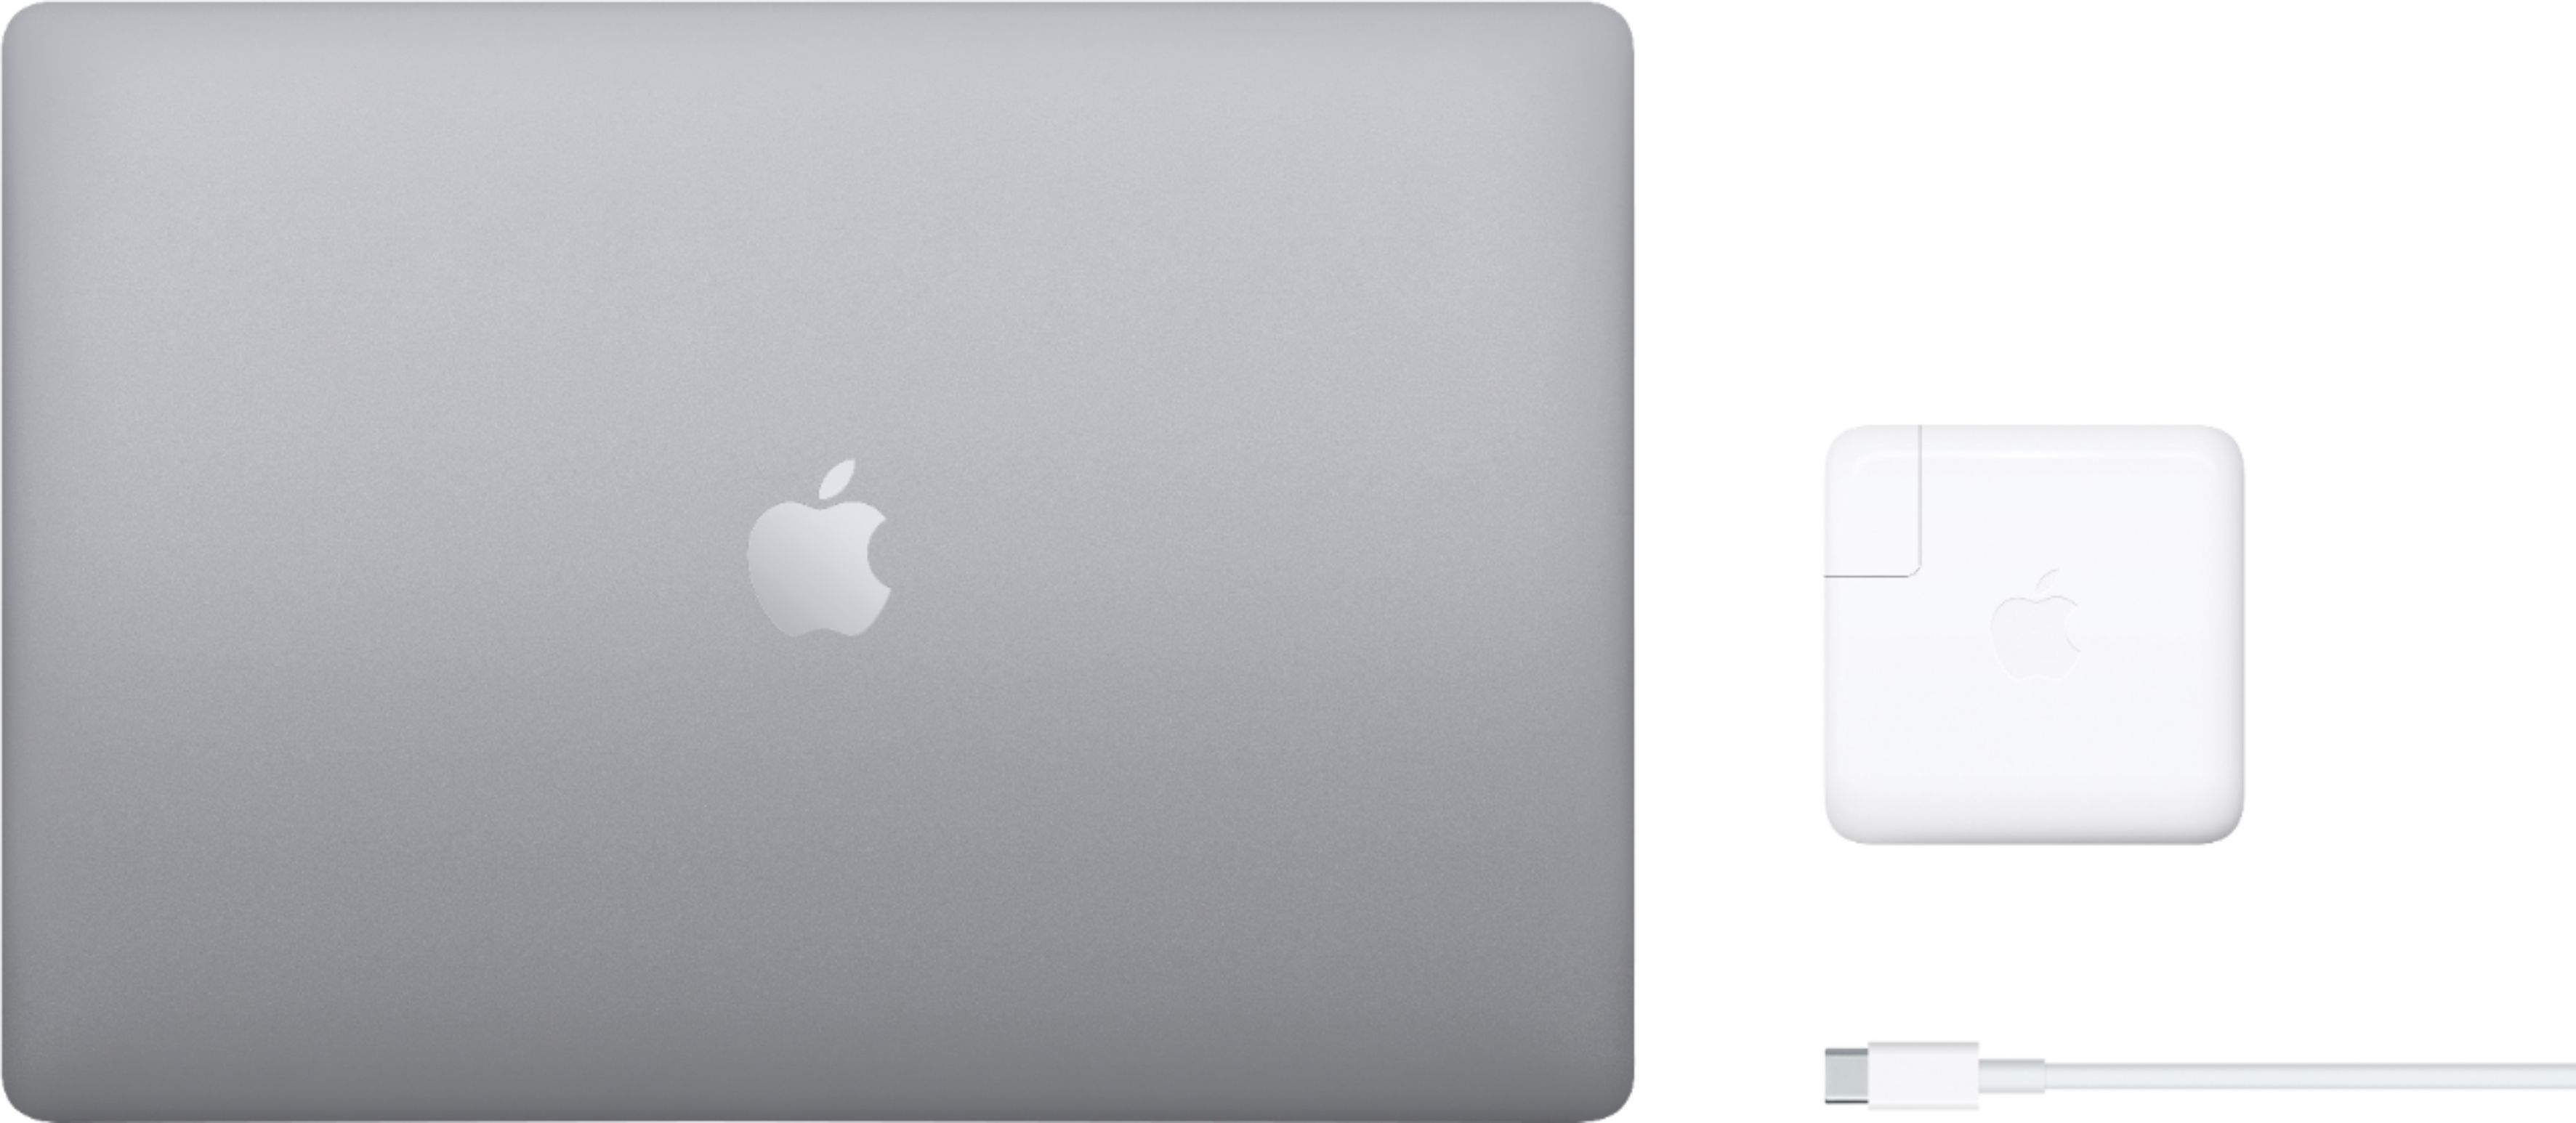 """Alt View Zoom 15. Apple - MacBook Pro - 16"""" Display with Touch Bar - Intel Core i7 - 16GB Memory - AMD Radeon Pro 5300M - 512GB SSD (Latest Model) - Space Gray."""